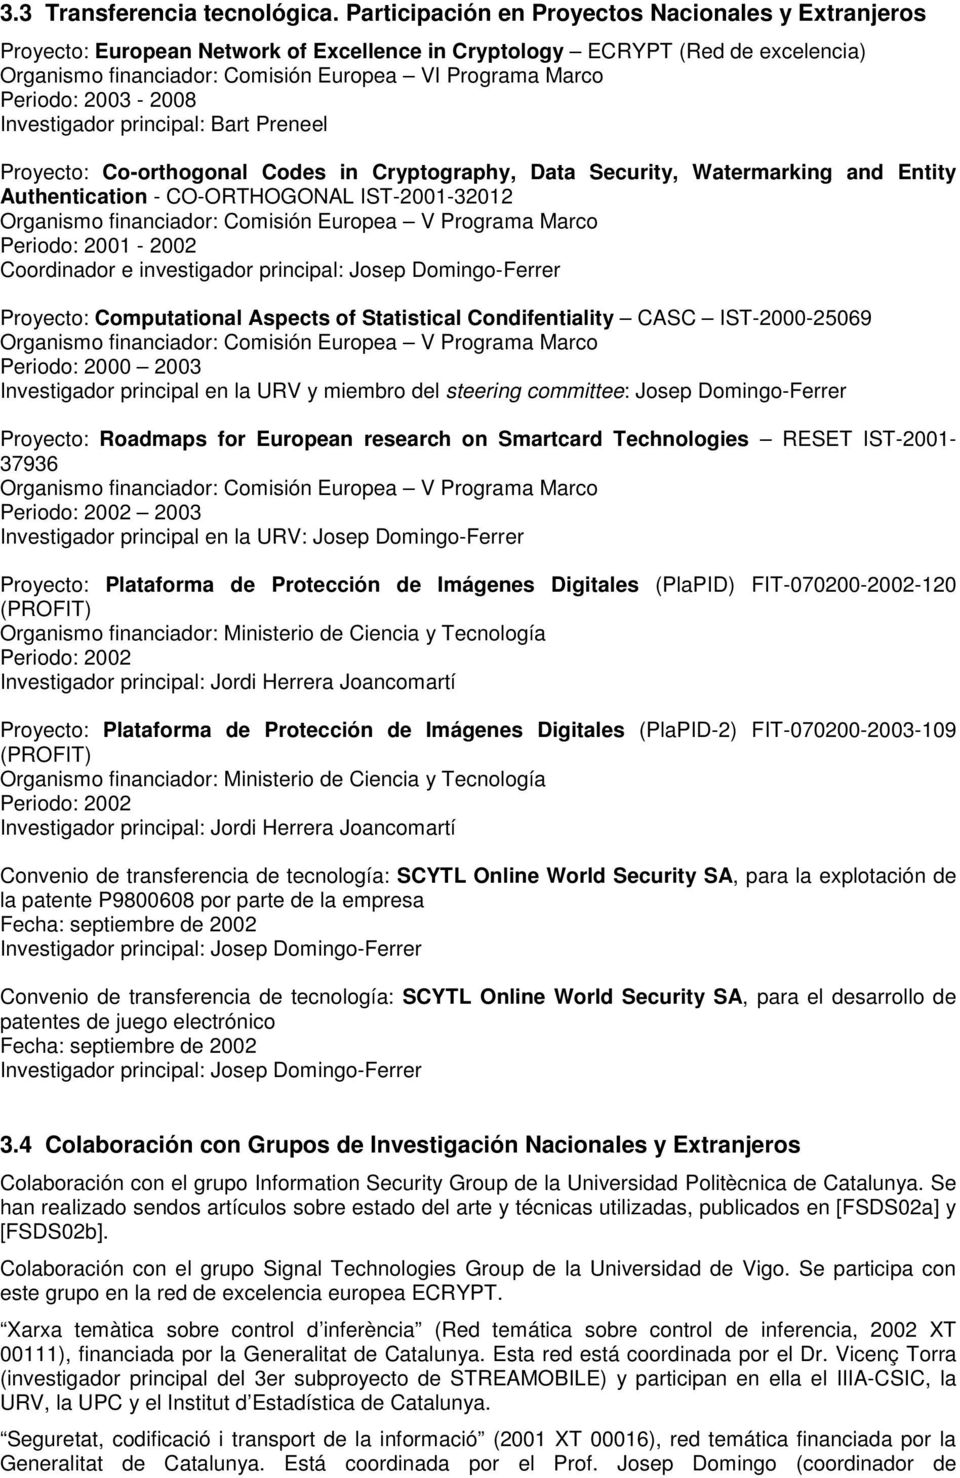 Periodo: 2003-2008 Investigador principal: Bart Preneel Proyecto: Co-orthogonal Codes in Cryptography, Data Security, Watermarking and Entity Authentication - CO-ORTHOGONAL IST-2001-32012 Organismo